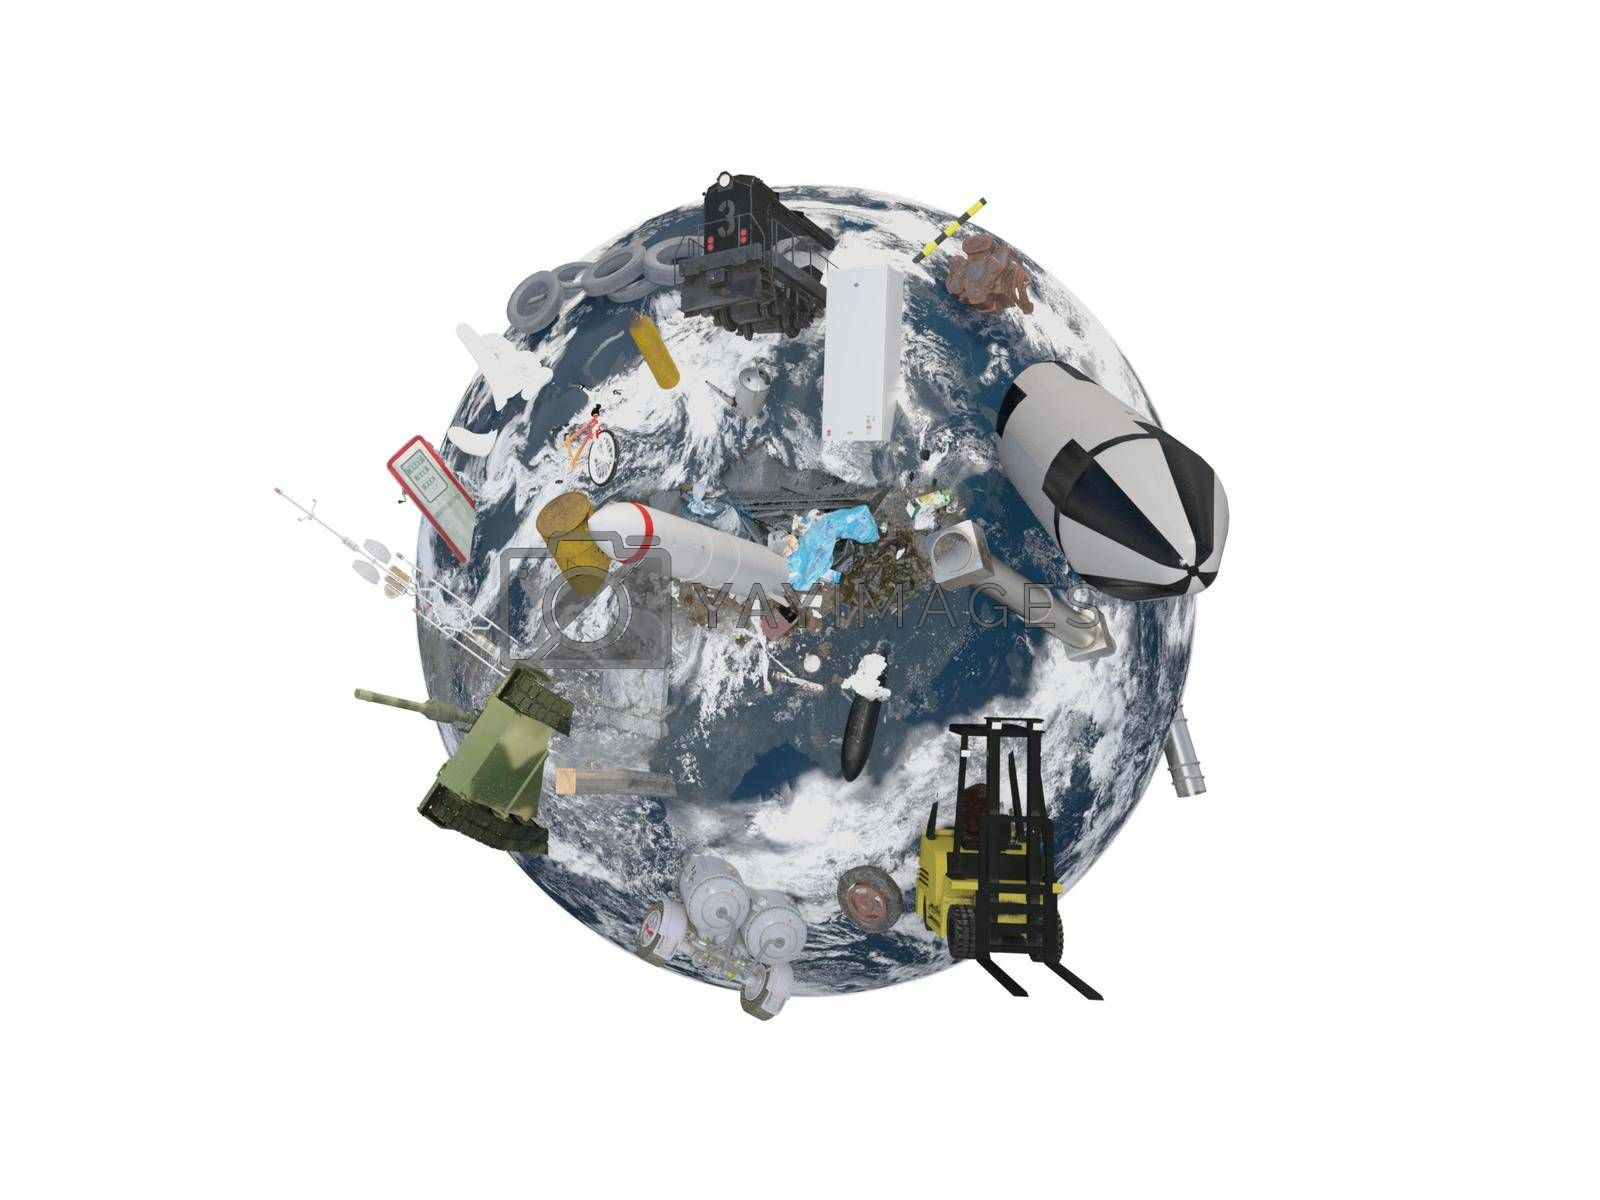 round earth black pollution war on white background - 3d rendering